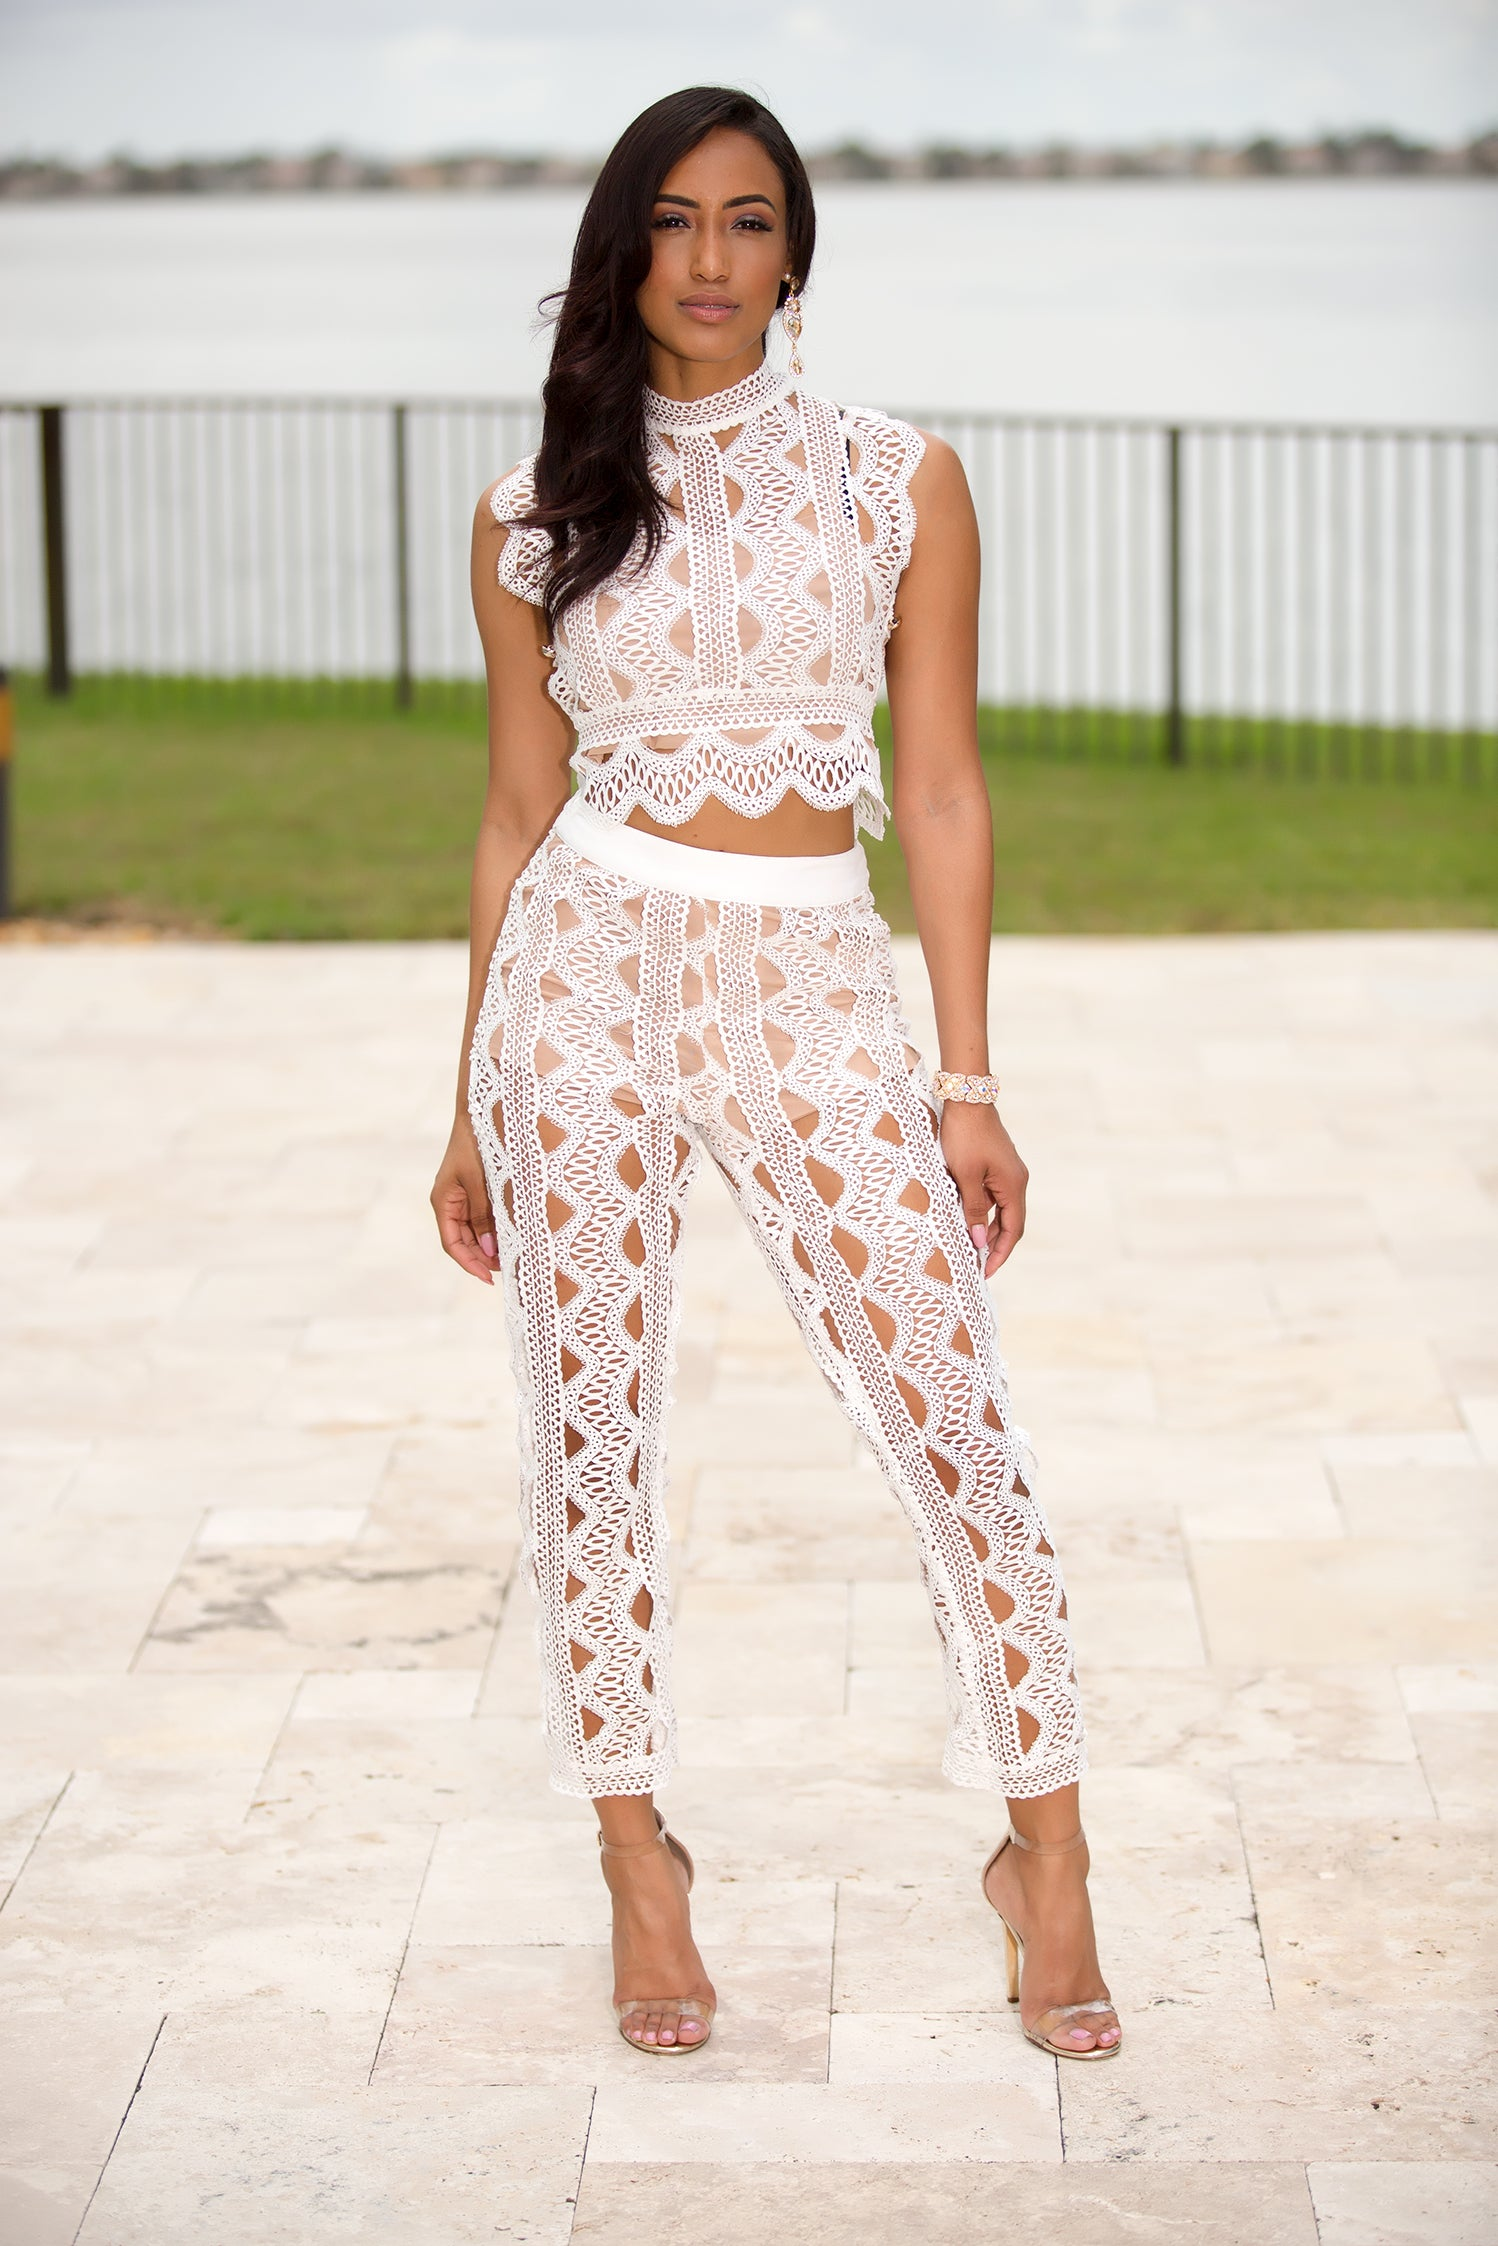 Milena - Beach Day Pant Set - Semai House Of fashion